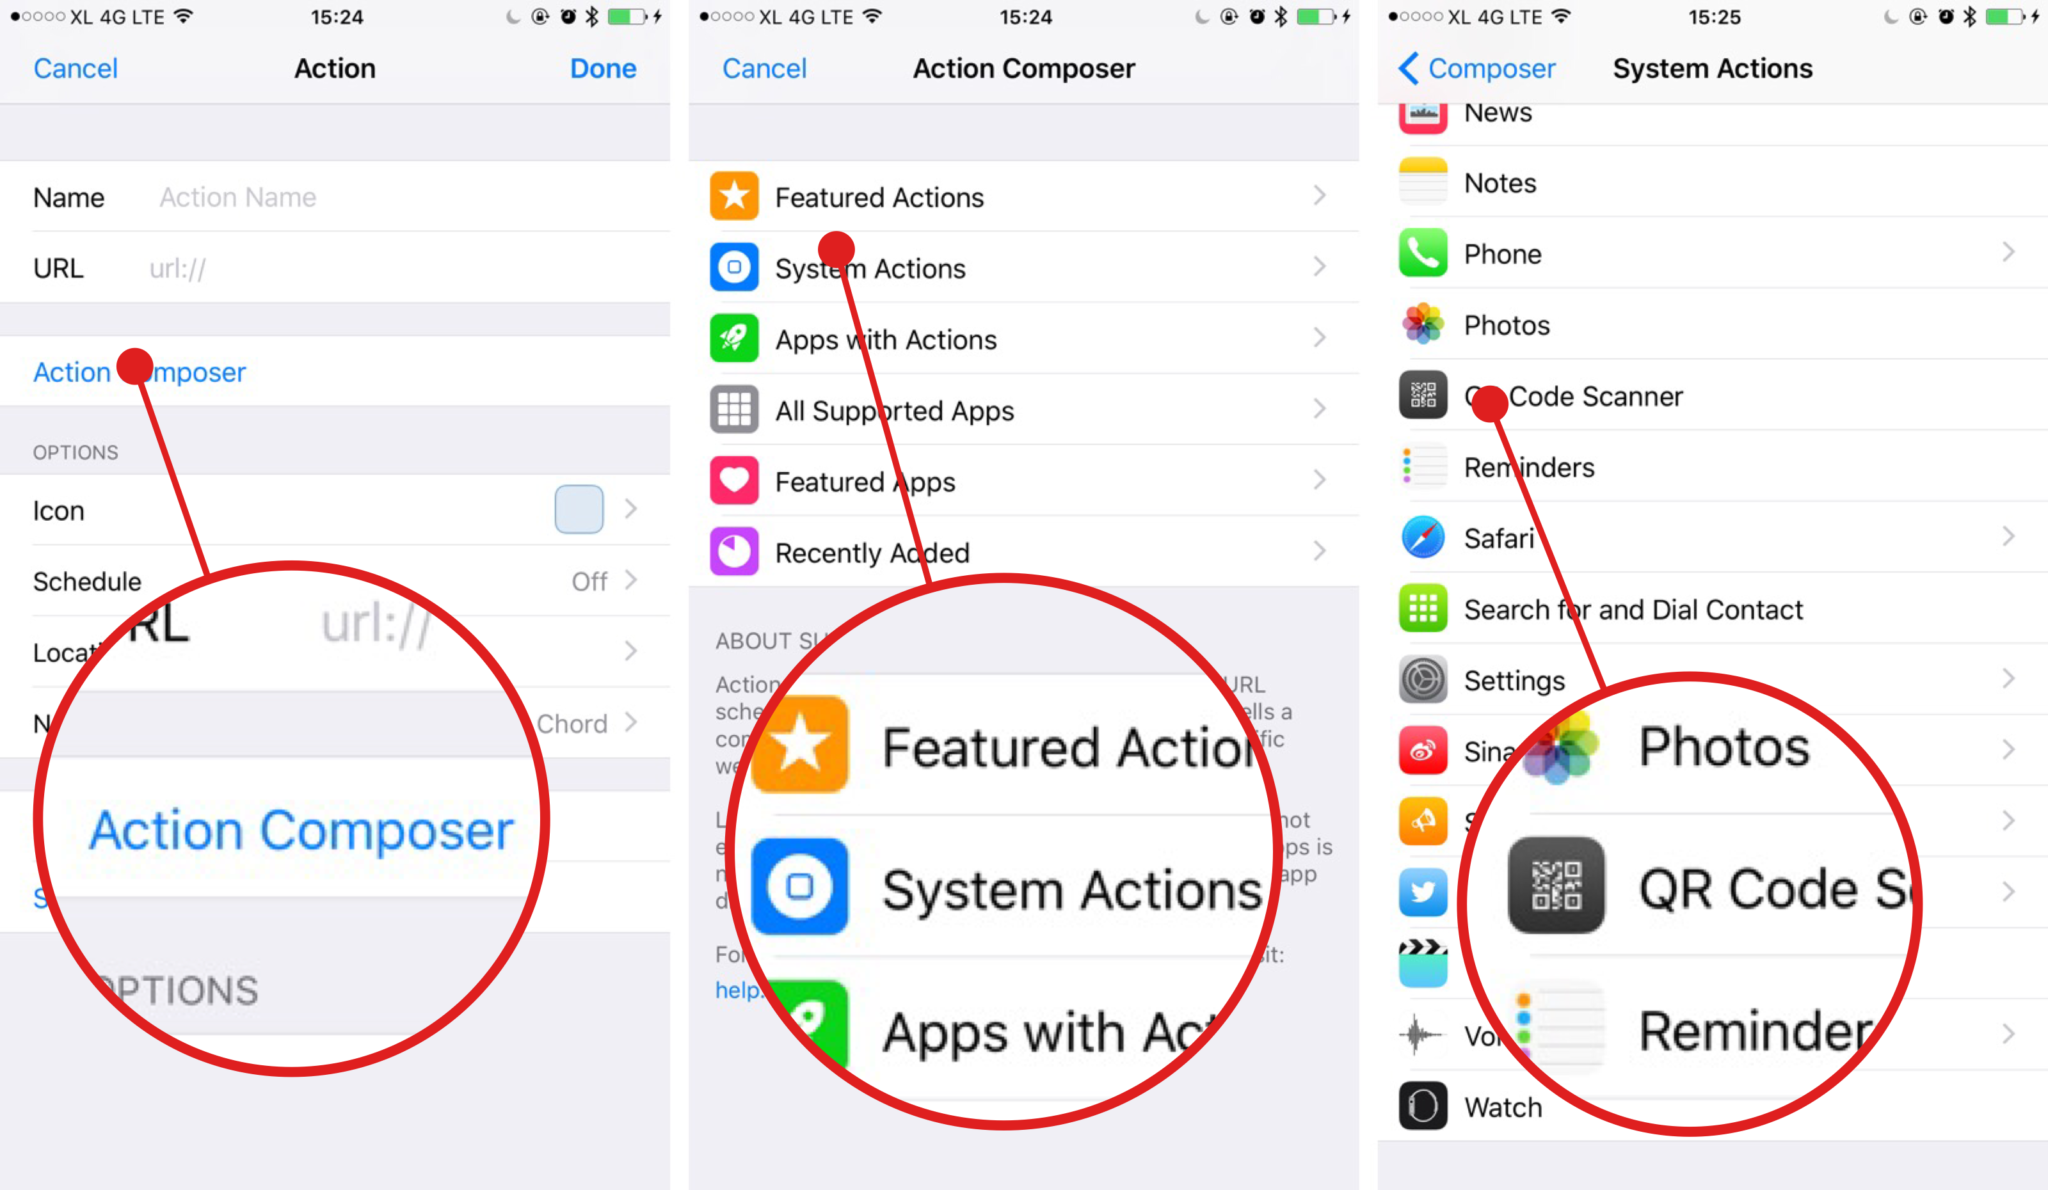 How to use Launch Center Pro to scan QR Code